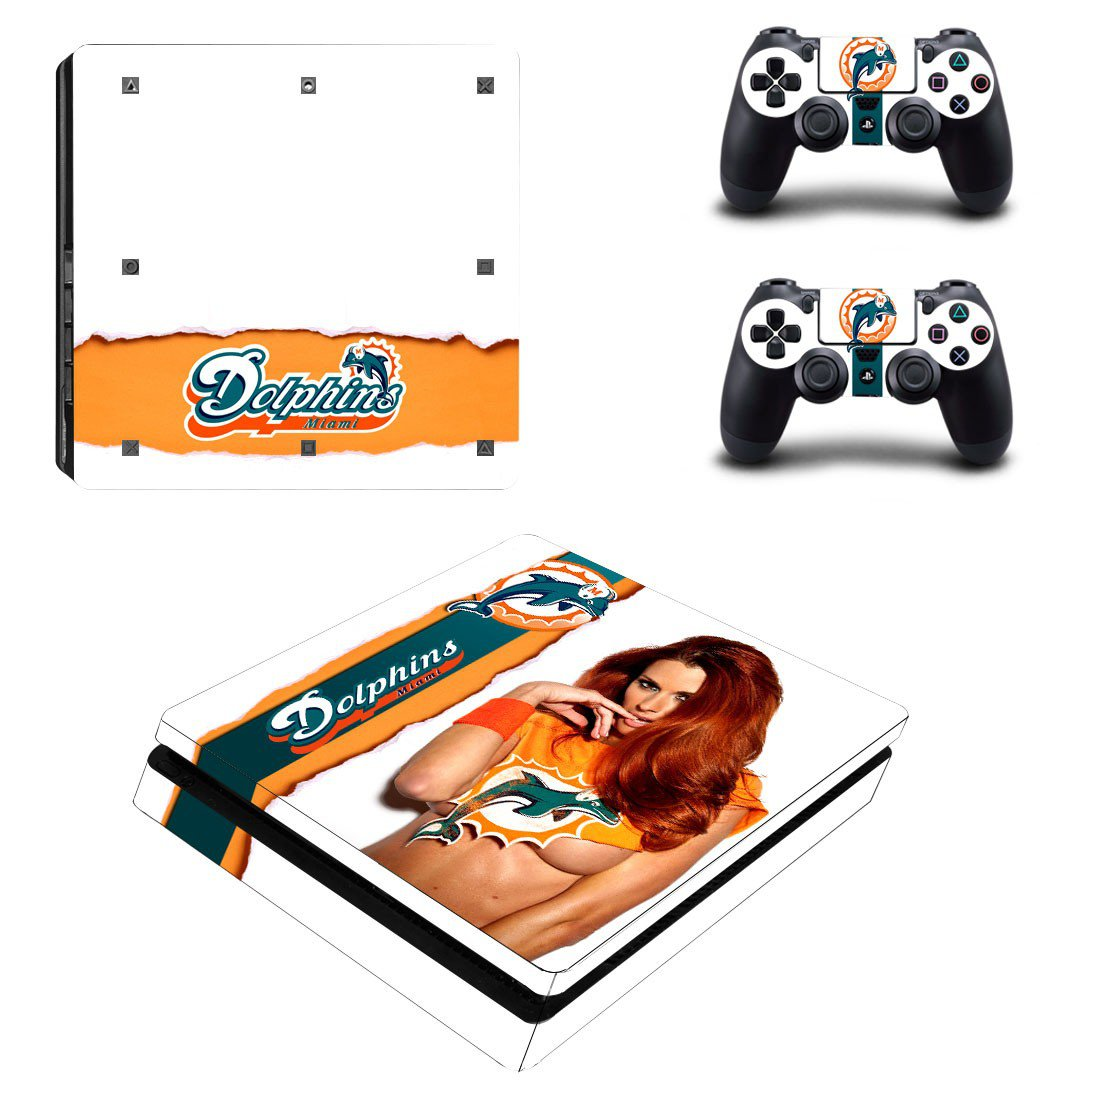 Miami Dolphins Play Station 4 slim skin decal for console and 2 controllers